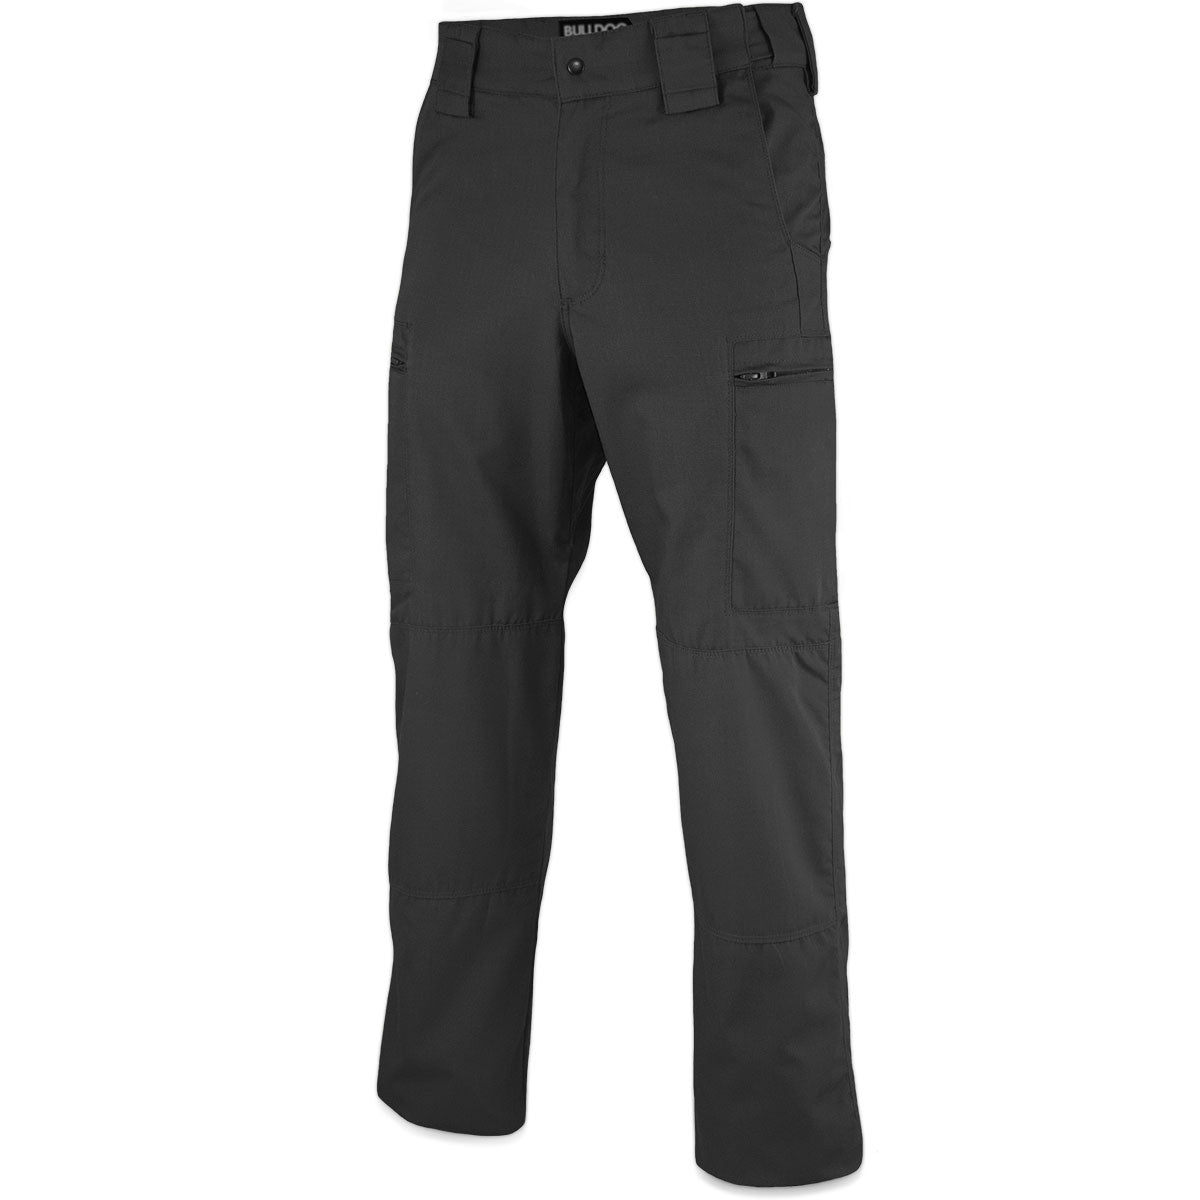 Exert Tactical Trousers Black | Bulldog Tactical Gear